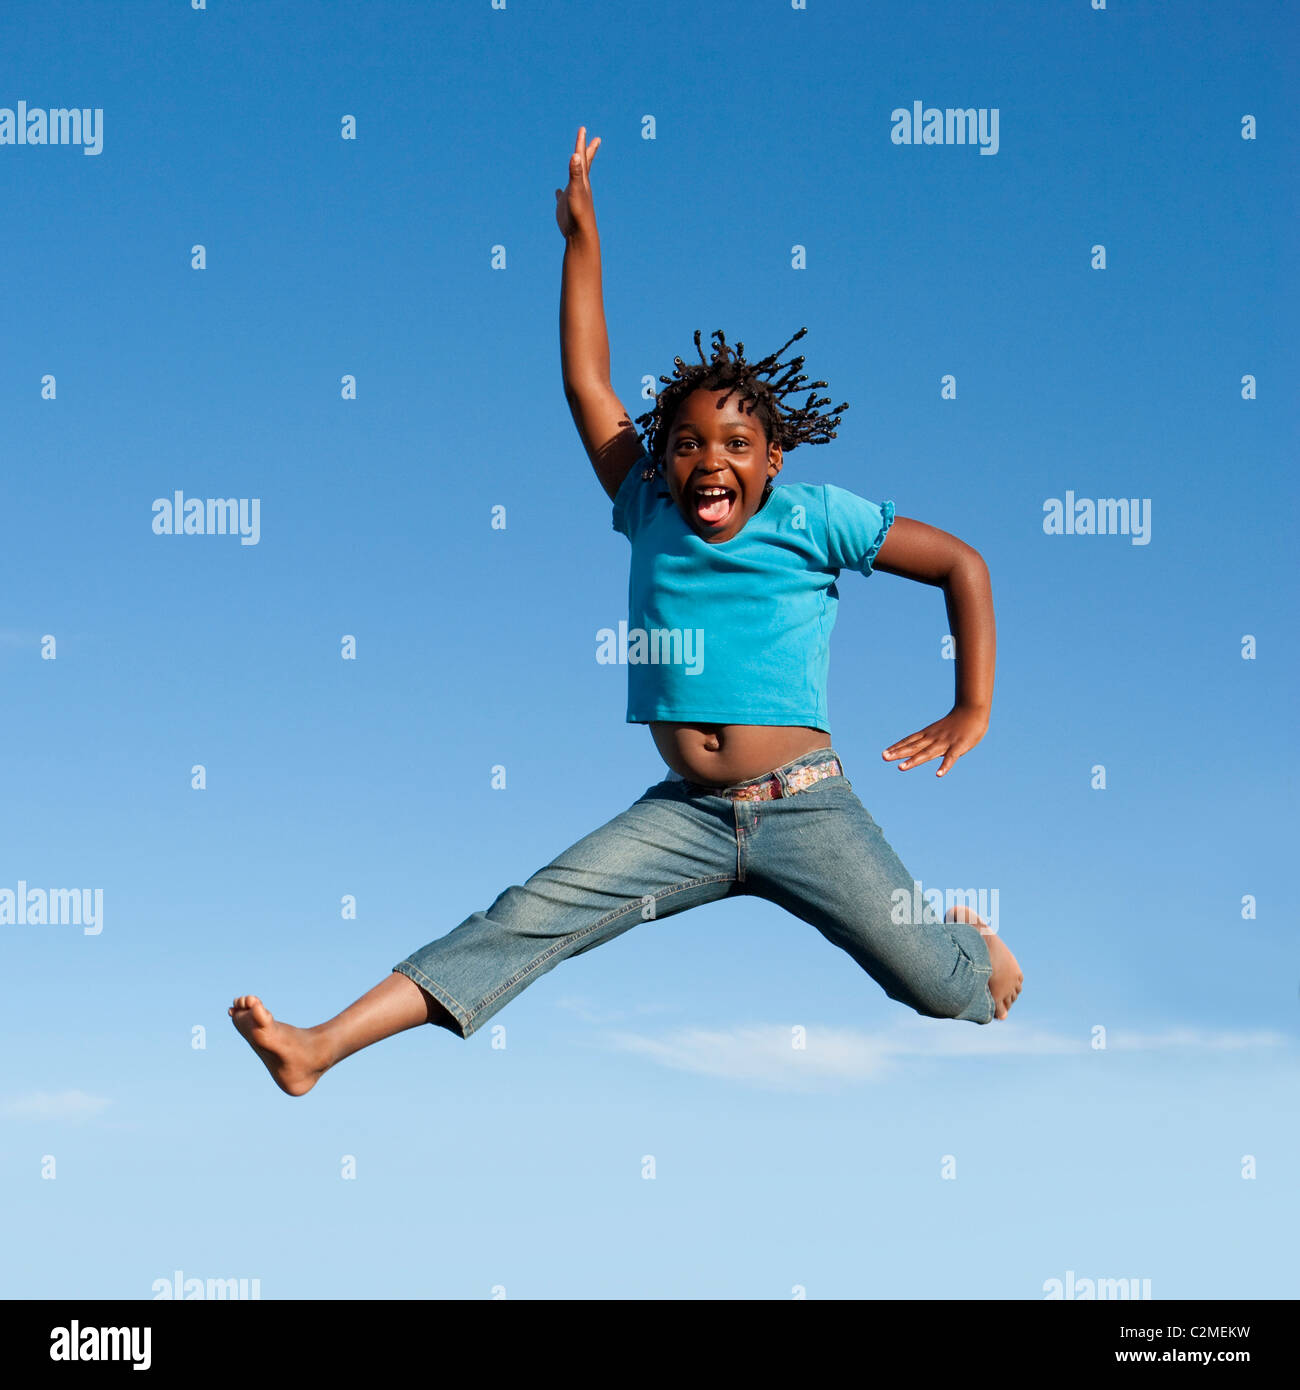 Jumping For Joy; Girl Jumping In Mid-Air Stock Photo